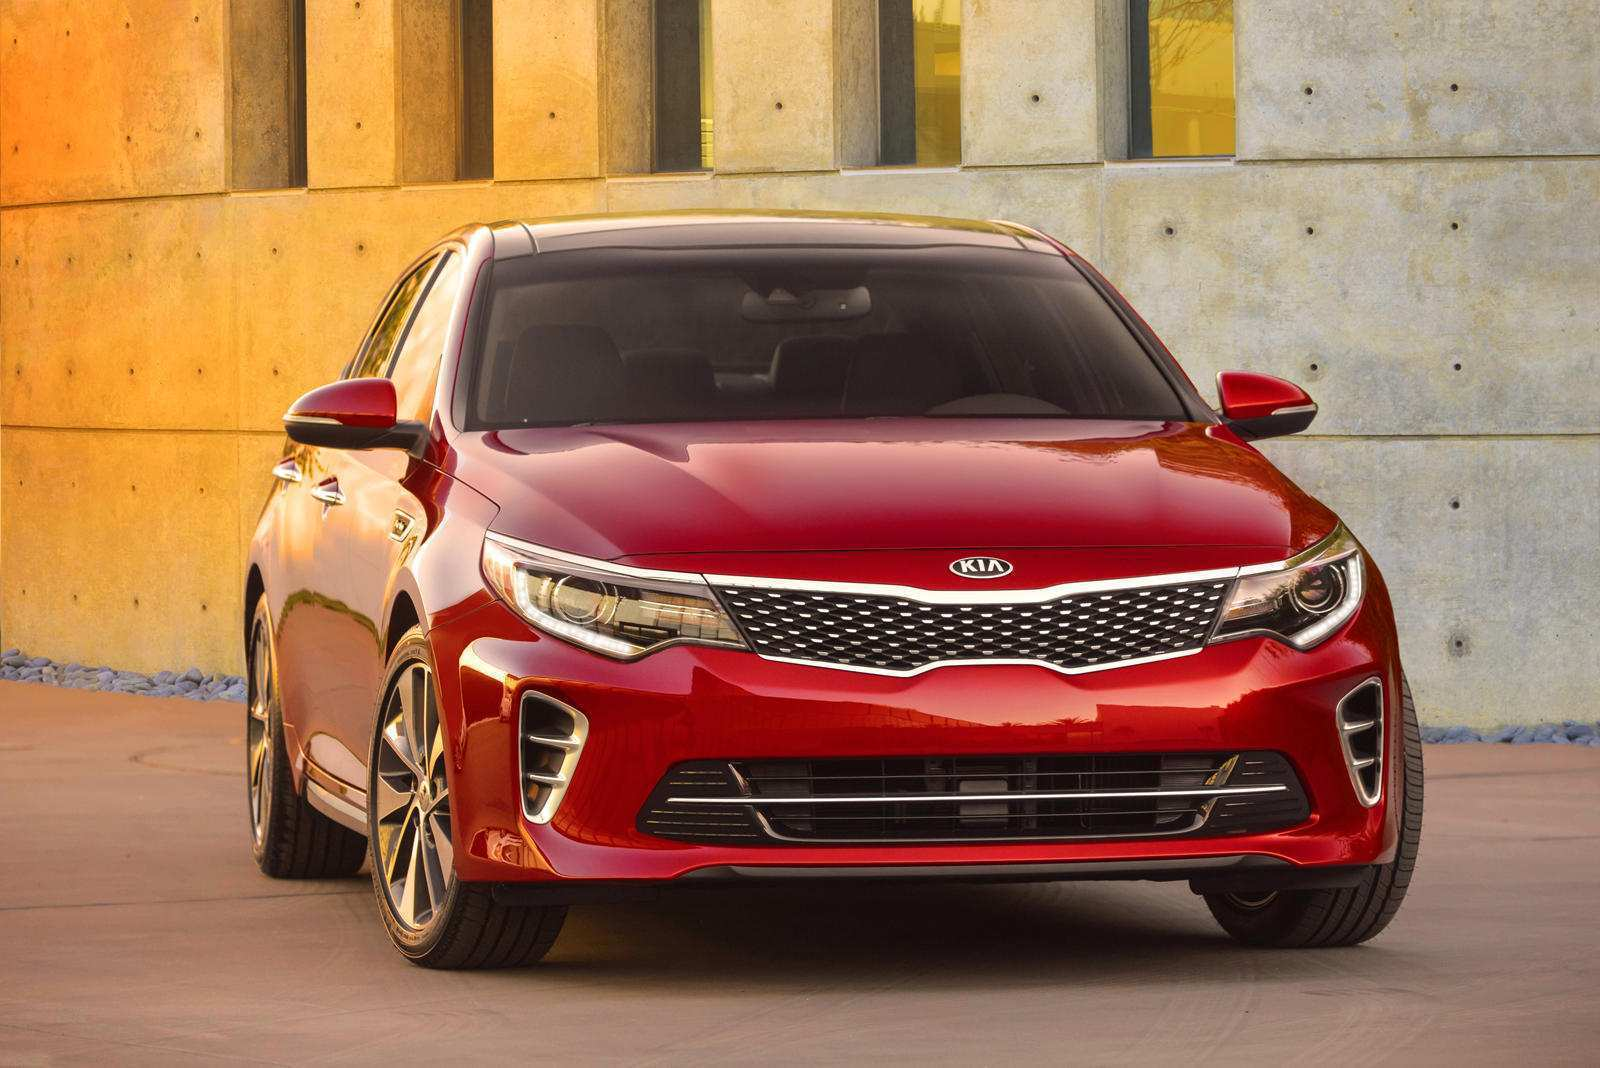 42 New Kia Optima 2020 Speed Test